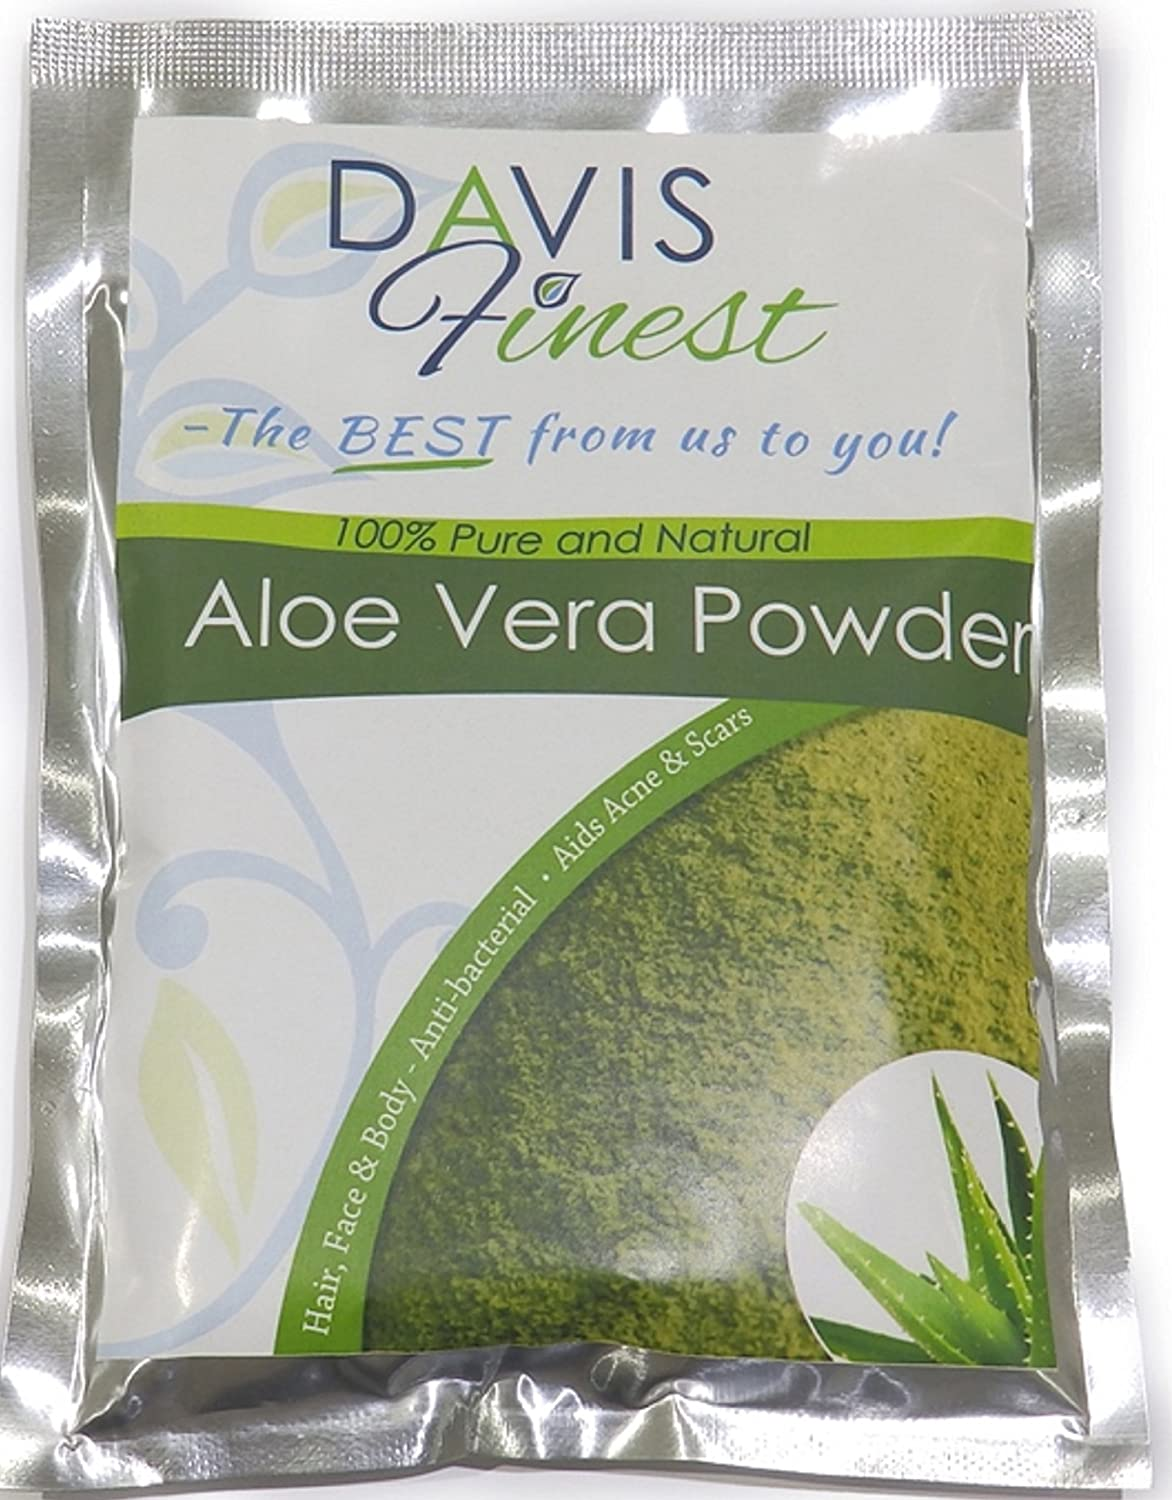 Aloe Vera Powder for Hair Face and Skin - Natural Skin and Hair Care Treatment for Dry Chapped Itchy Damaged Problem Skin and Scalp - Rejuvenating Facial Mask 100g